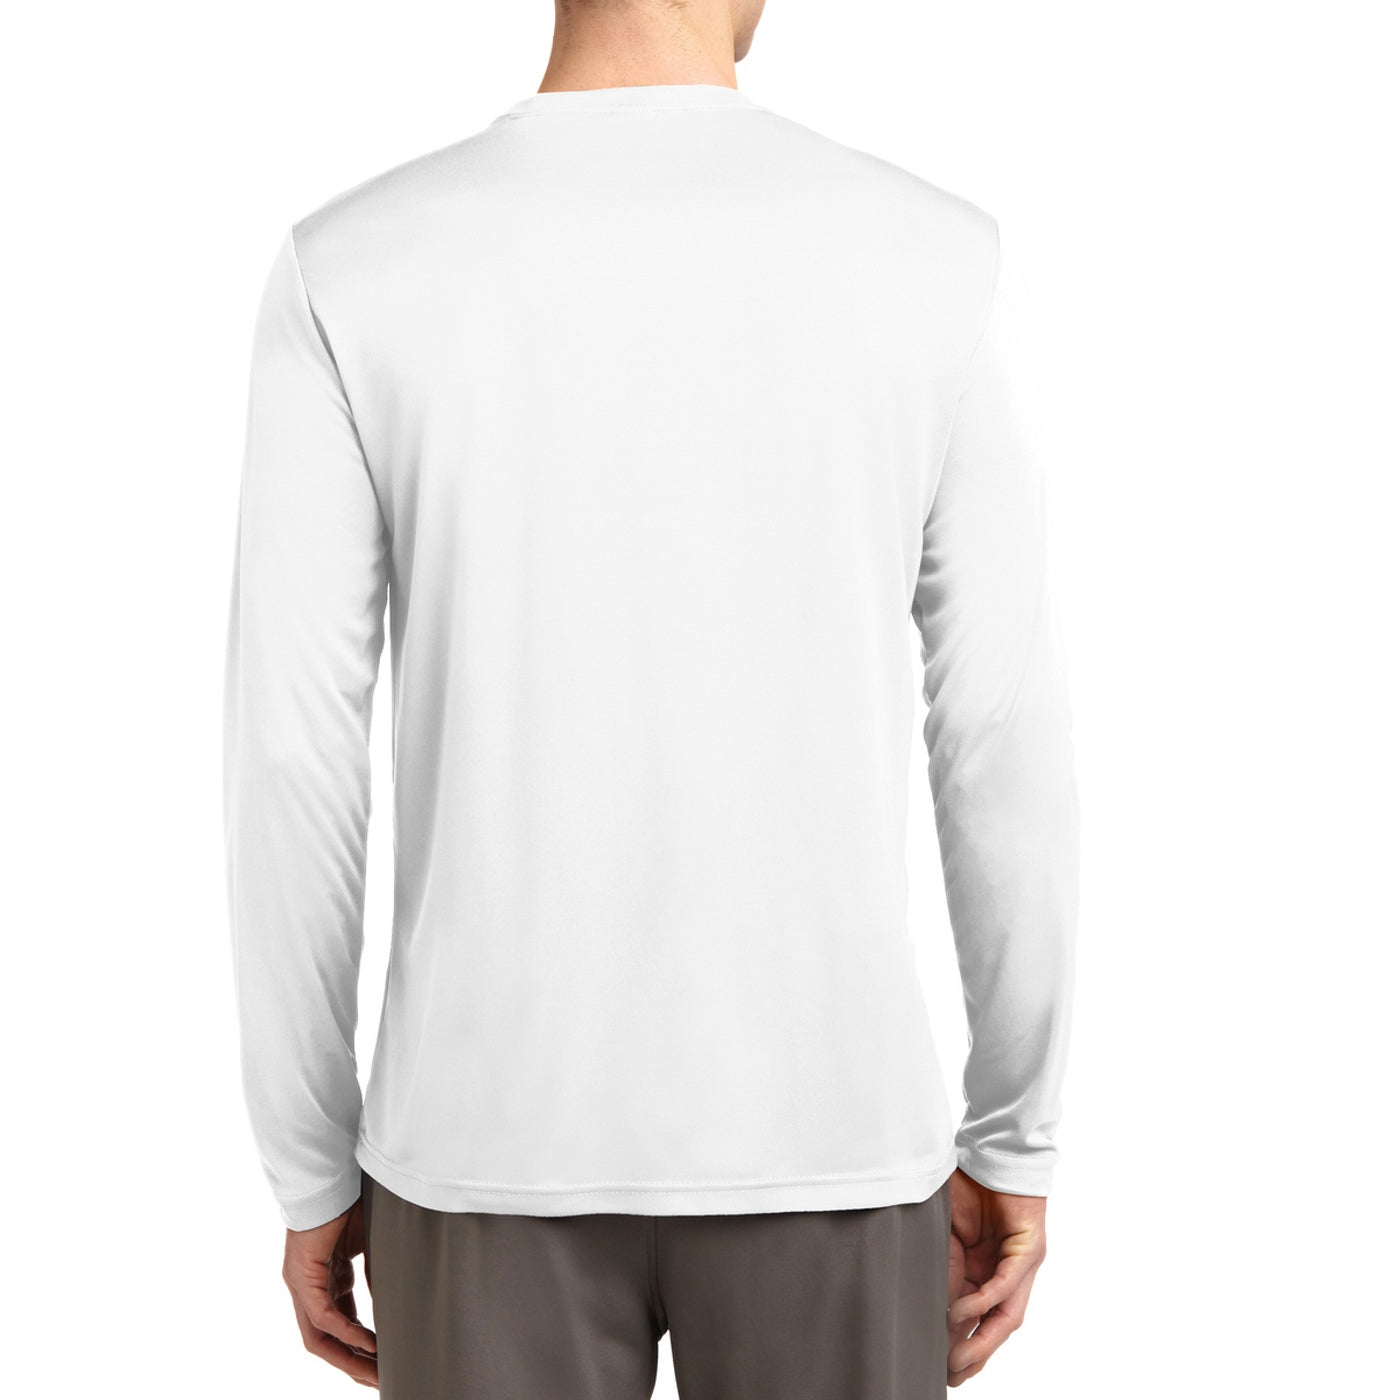 Men's Long Sleeve PosiCharge Competitor Tee - White